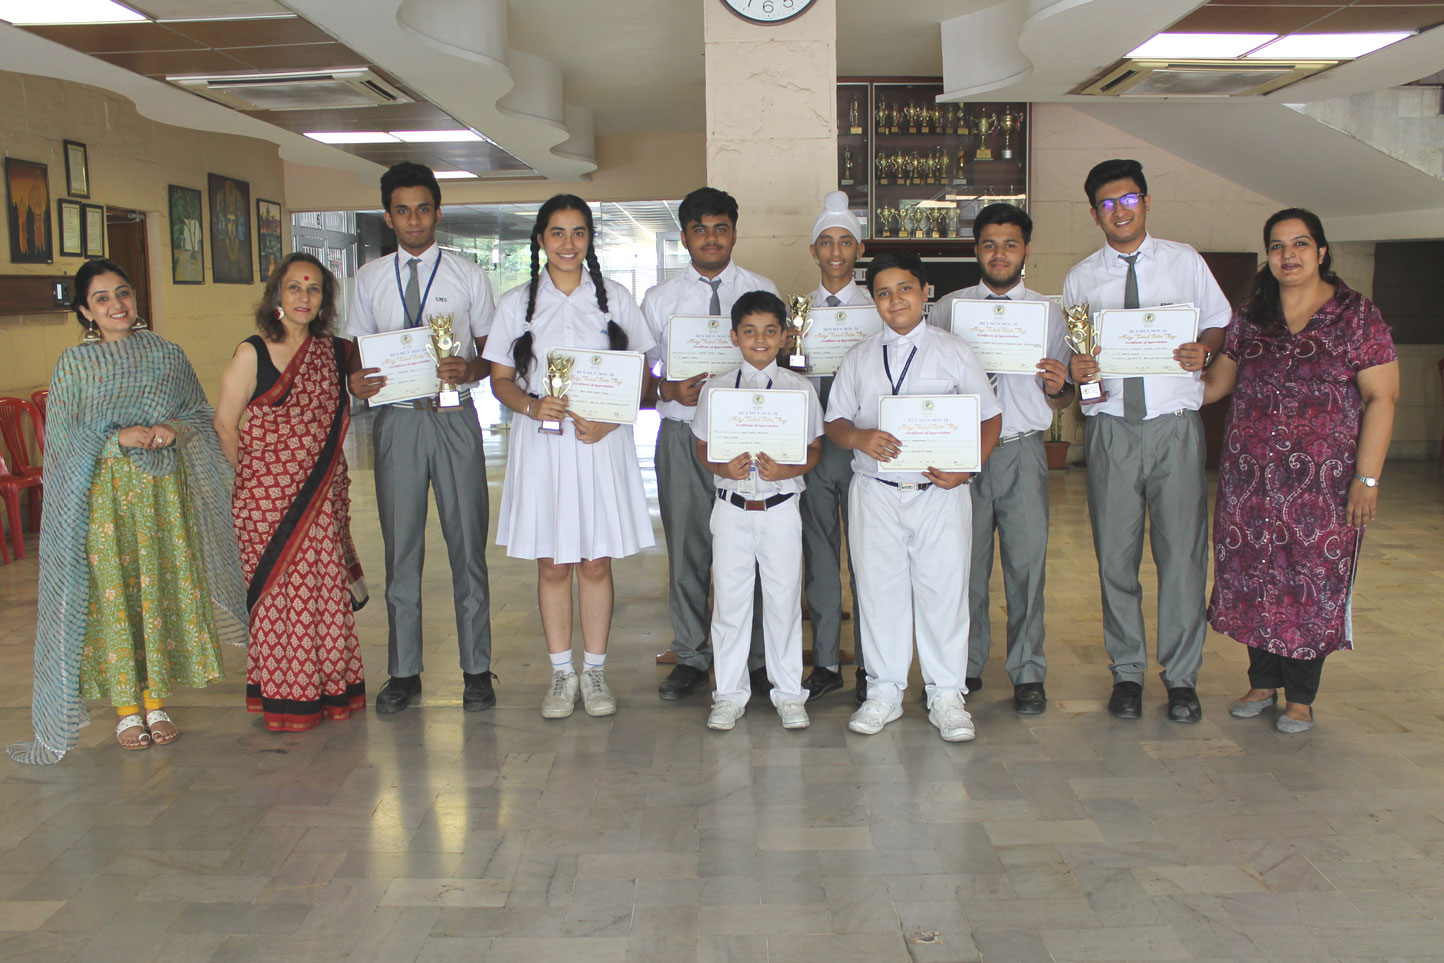 Inter School Competitions - St  Mark's Sr  Sec  Public School, Meera